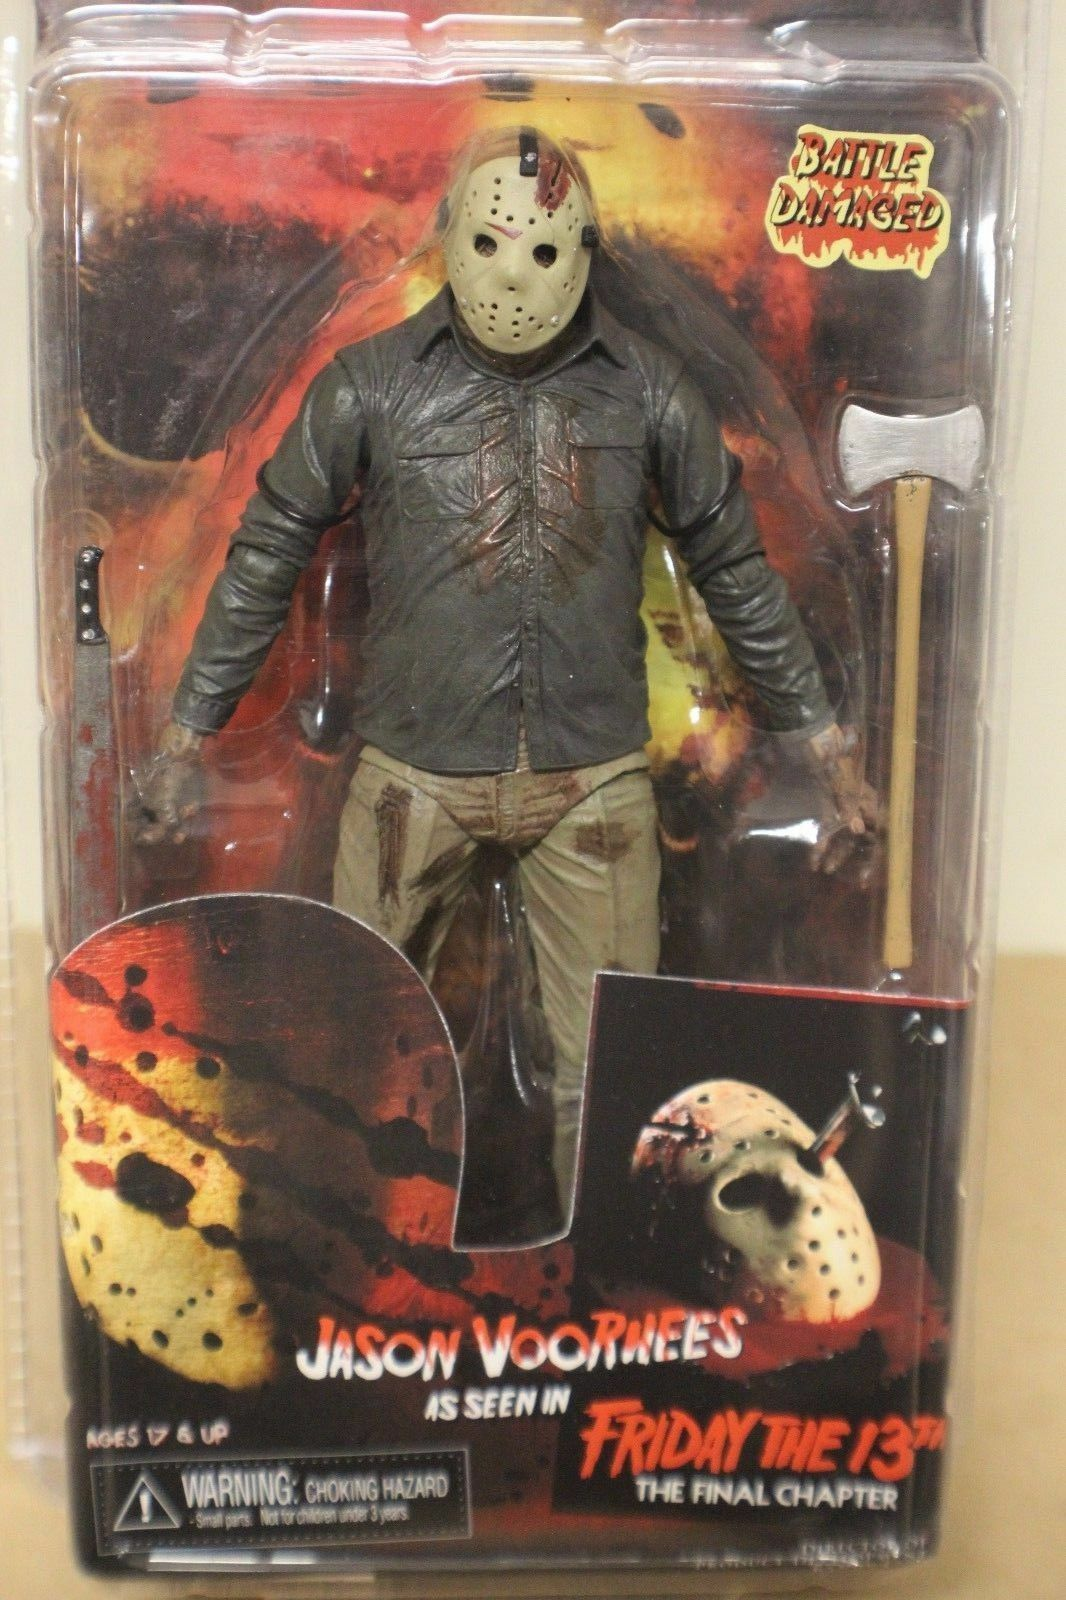 Jason Voorhees Friday the 13th Final Chapter Battle Damaged NECA Action Figure